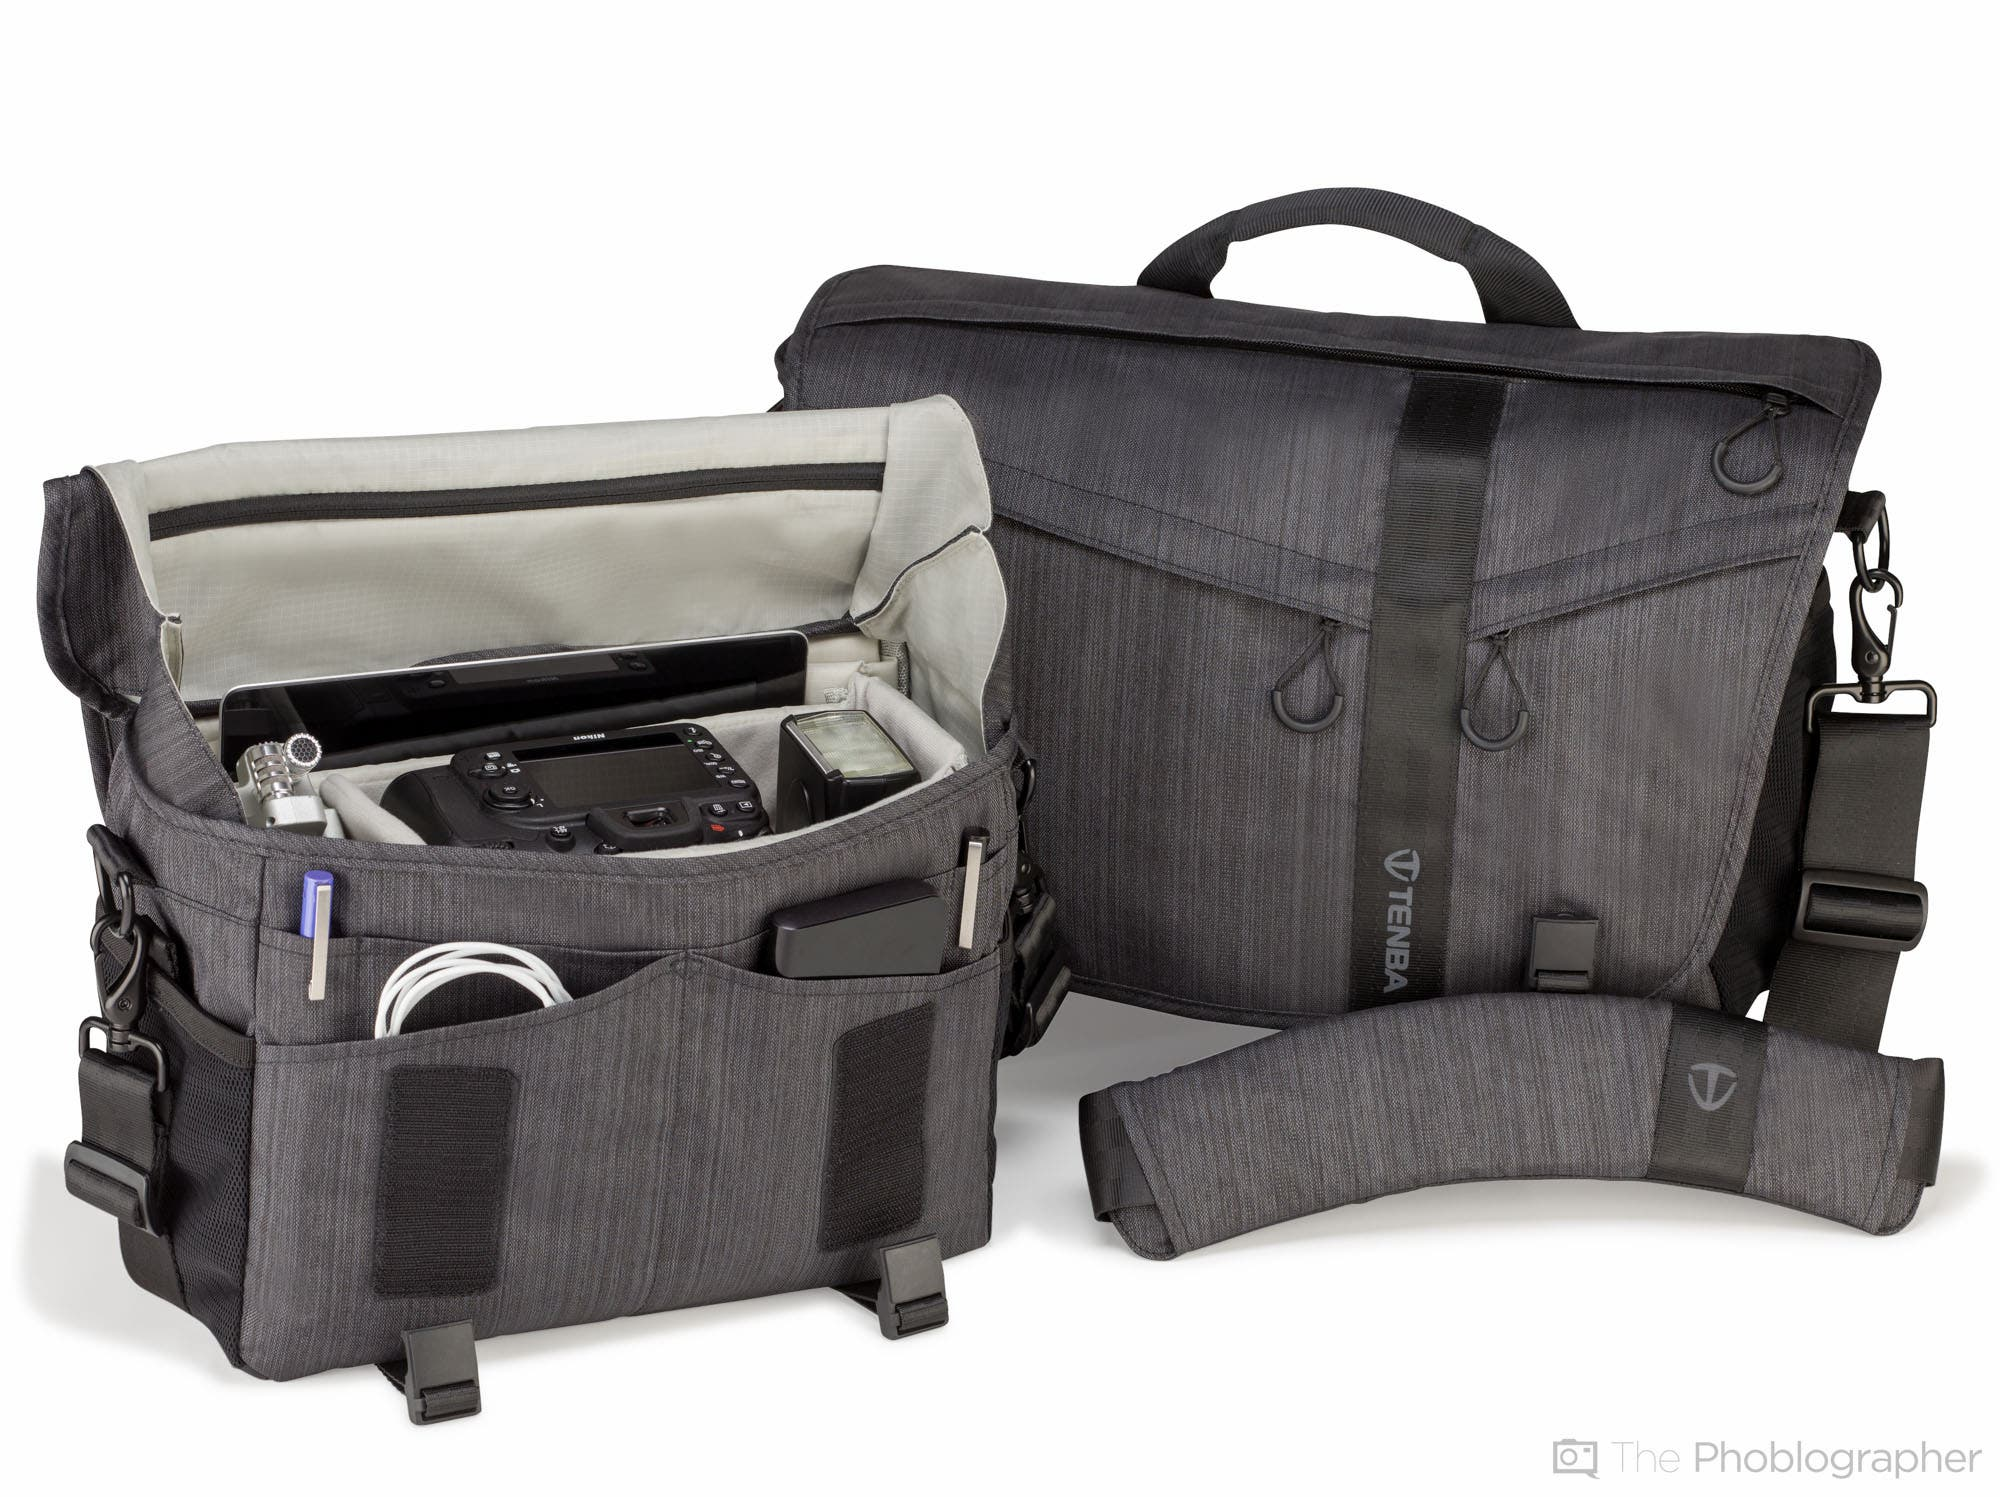 Five Messenger Bags to Lust Over - The Phoblographer